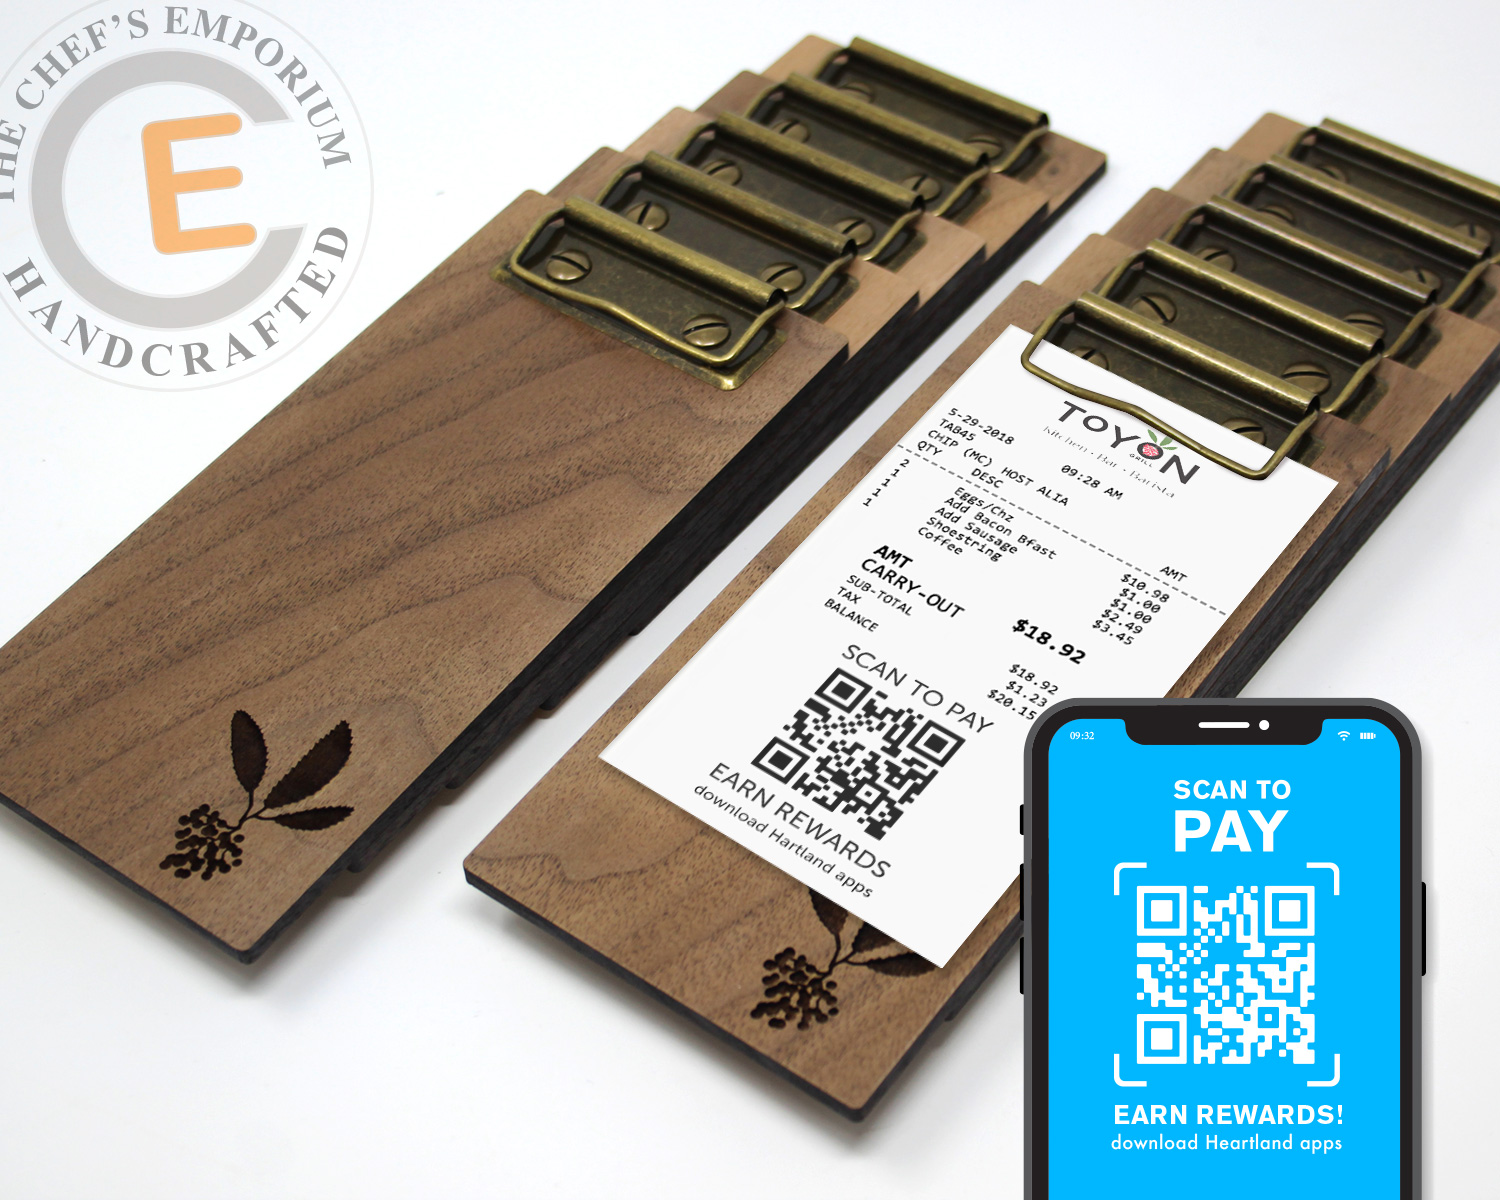 Restaurant Check Holder Touchless Scan to Pay - #restaurantrecovery #restaurantindustry #foodindustry